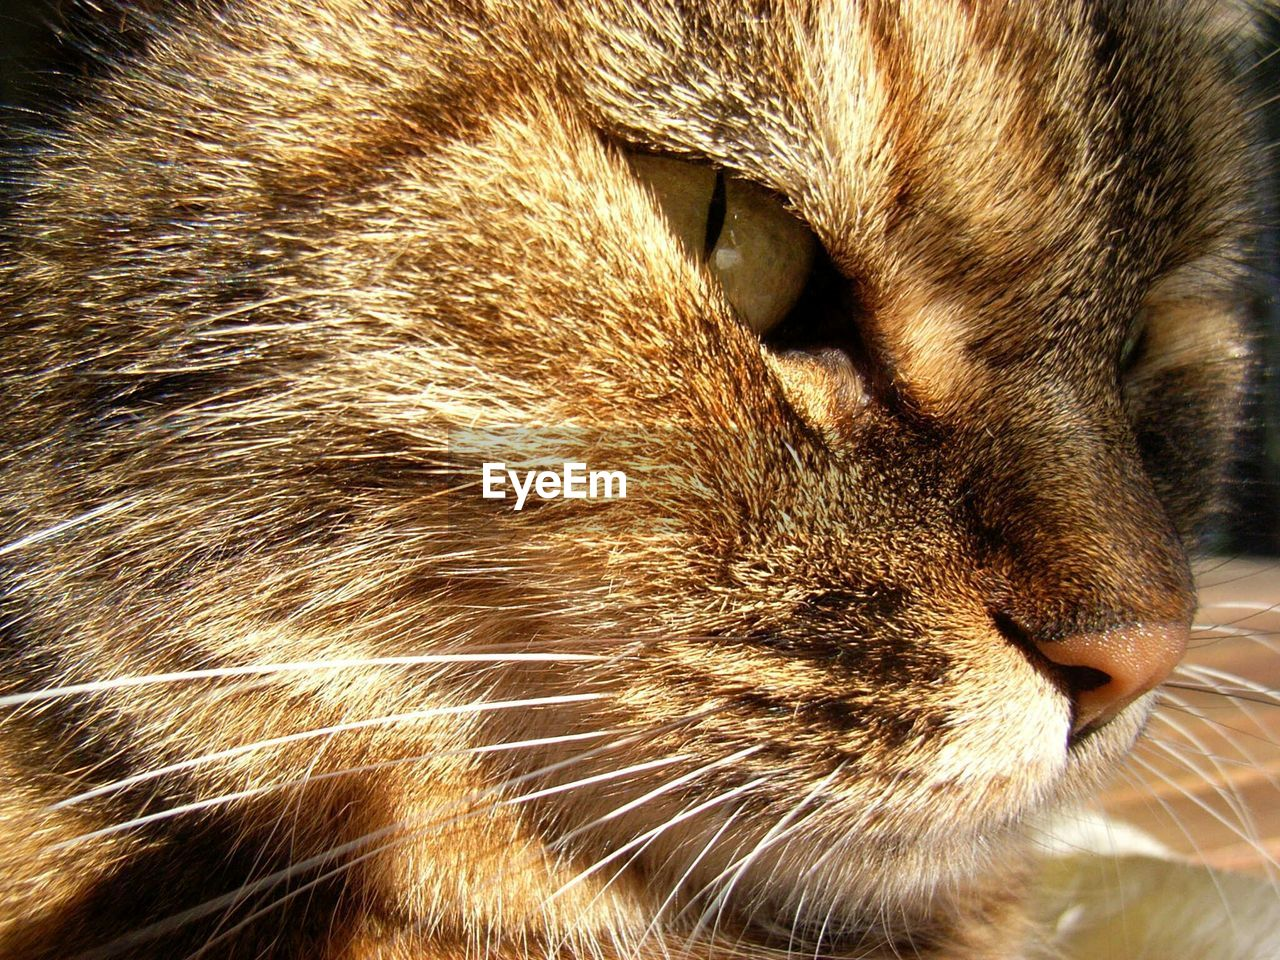 one animal, pets, animal themes, domestic cat, domestic animals, mammal, close-up, whisker, feline, no people, indoors, nature, day